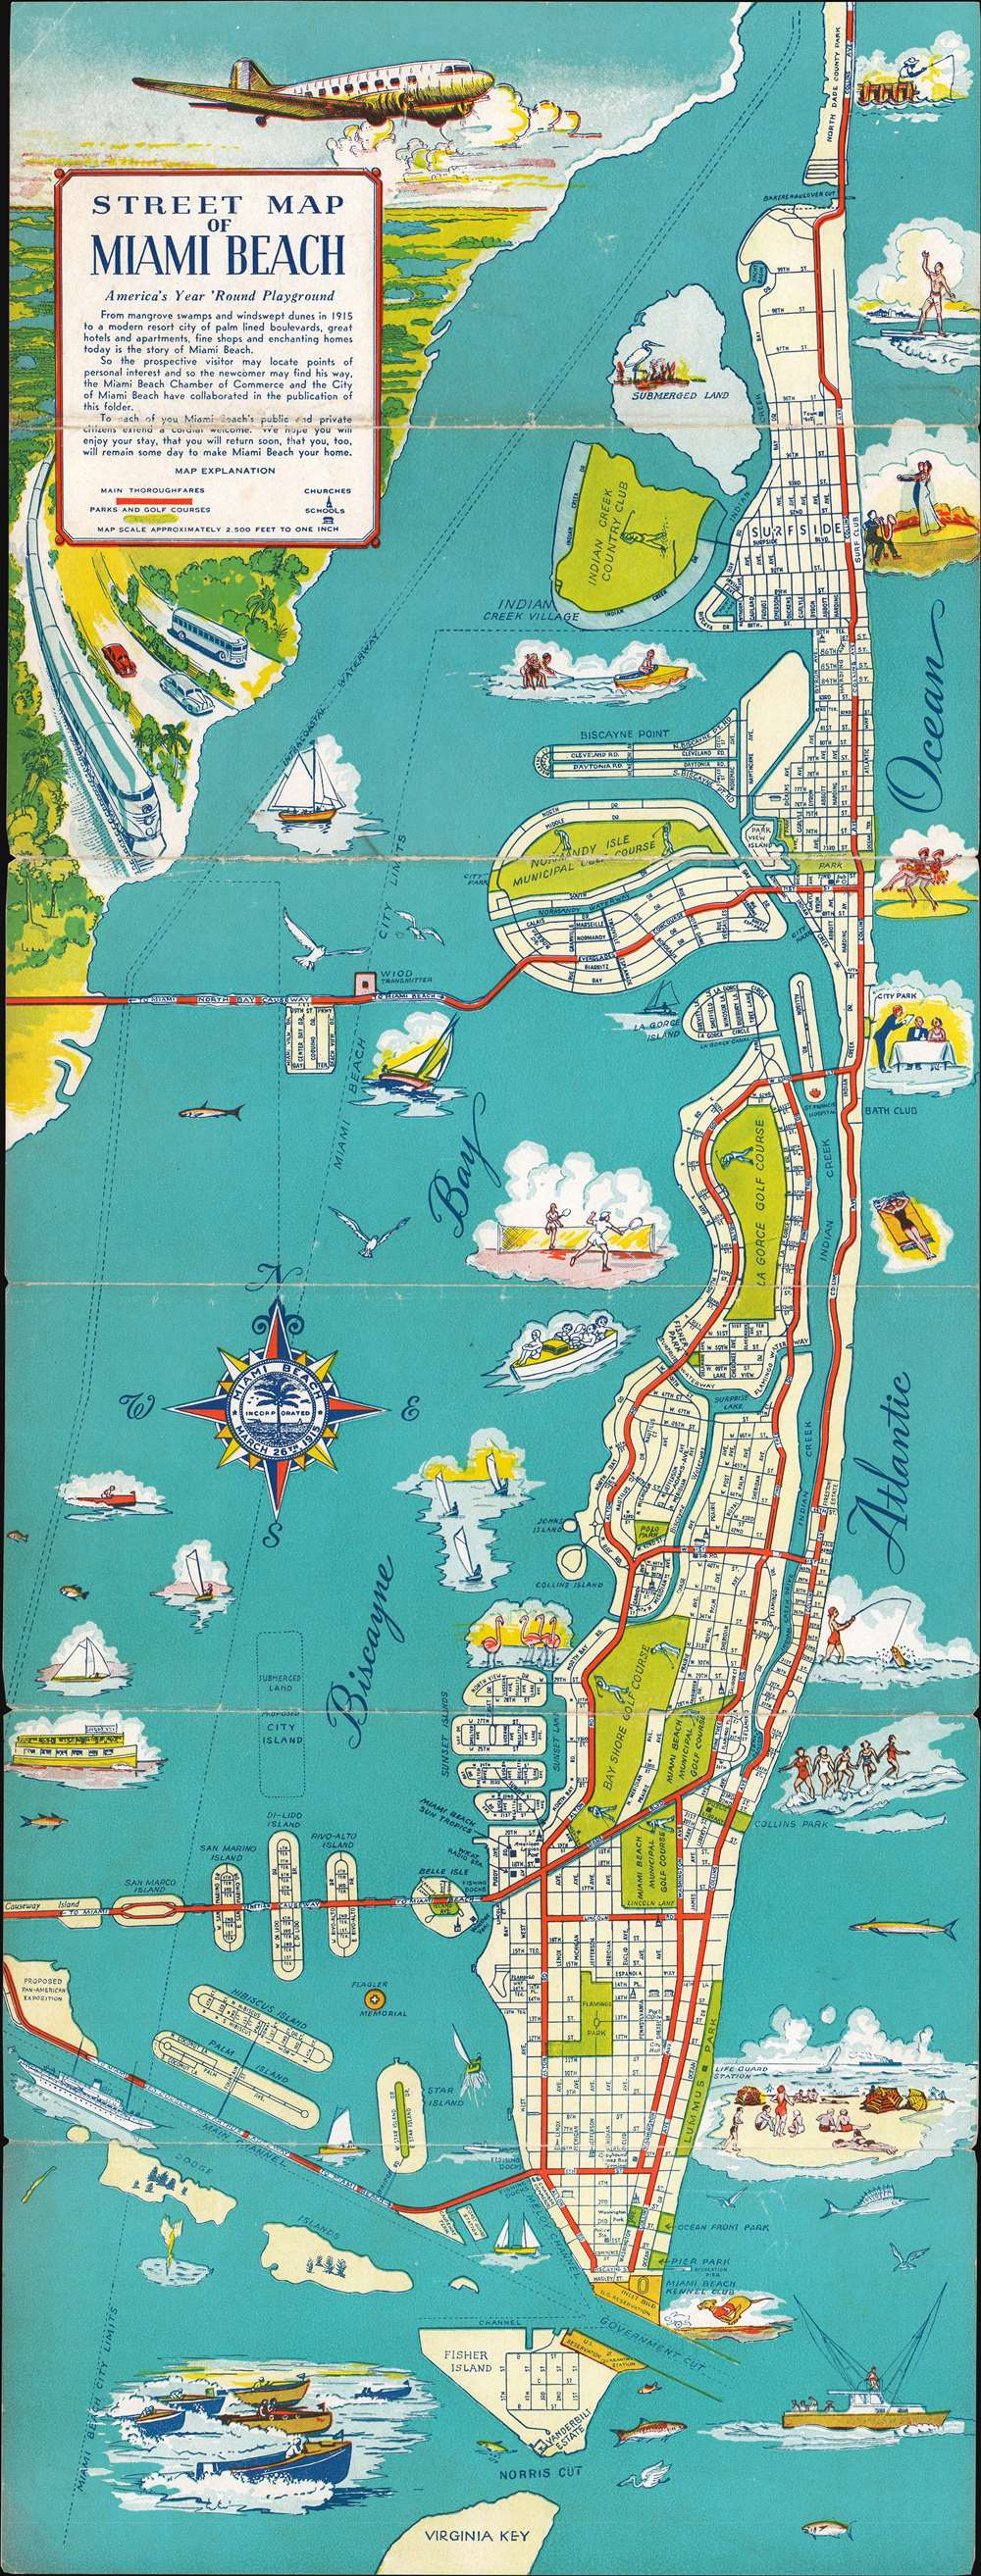 1945 Miami Chamber of Commerce City Plan or Map of Miami Beach, Florida